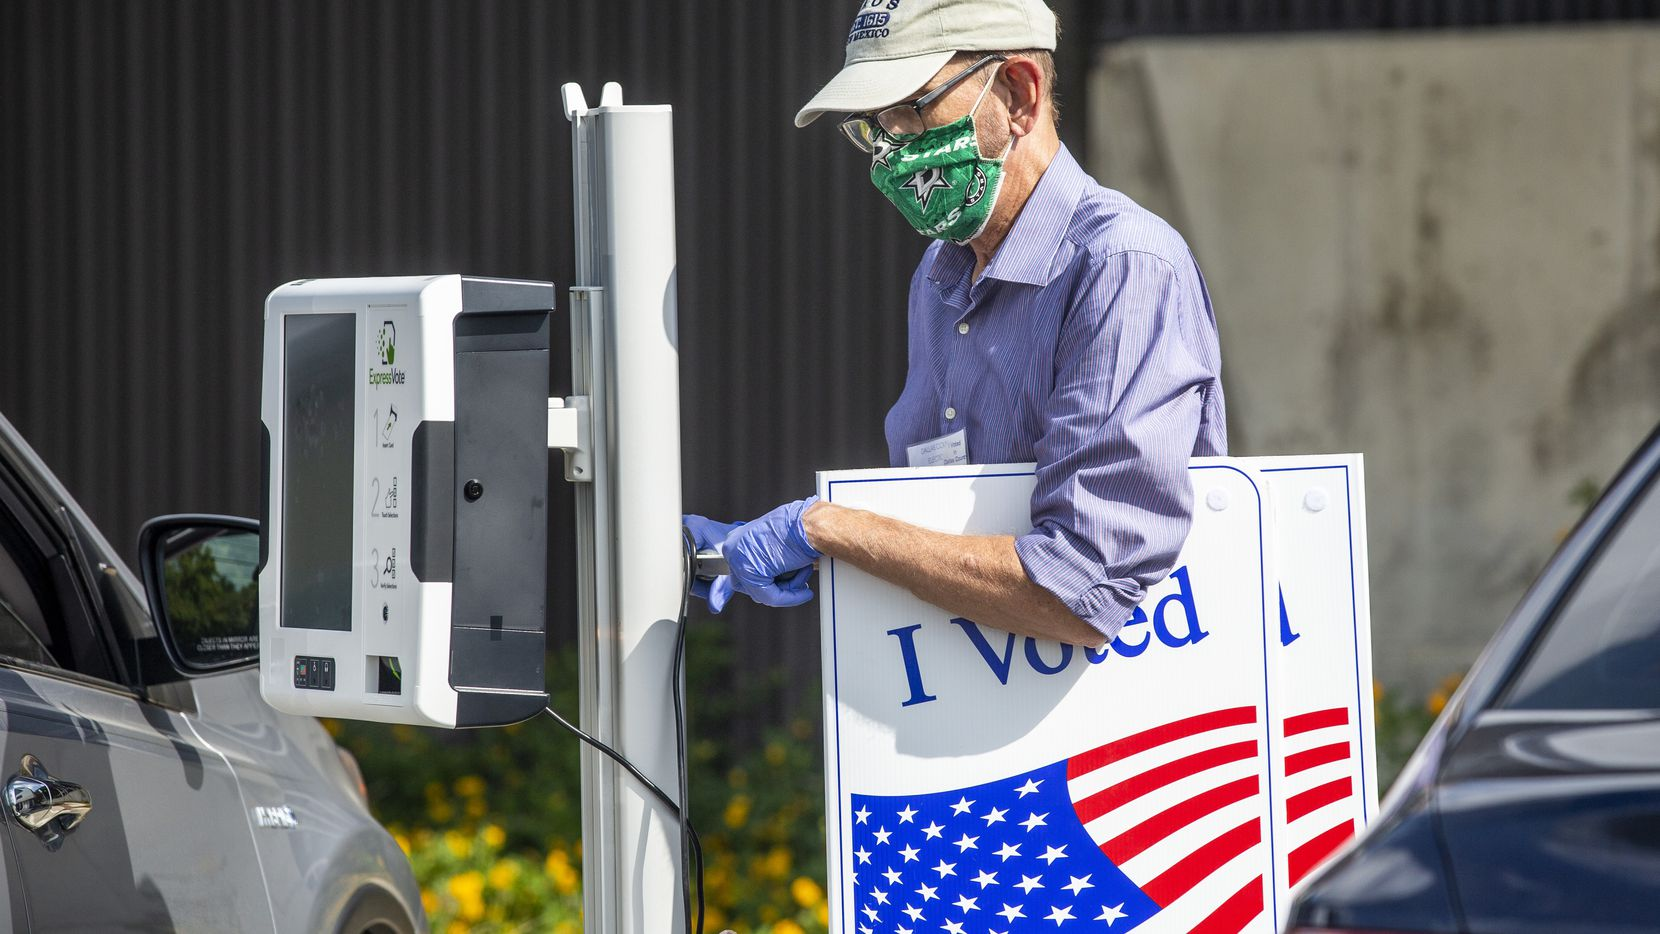 "Election poll worker Daryl Hinshaw wheels a curbside voting machine to a parked voter during the early voting period for the general U.S. election at Fretz Park Public Library in Dallas on Oct. 20, 2020. This is only Hinshaw's second election working as a poll worker, but both this one and the democratic run-off in July he worked took place during the COVID-19 pandemic. ""The mask is mostly the thing that's different, but it doesn't take very long once [voters] are in the door,"" he said. ""But we do curbside voting for people who have mobility issues or are high-risk compromised, or for those who just don't want to come inside."""